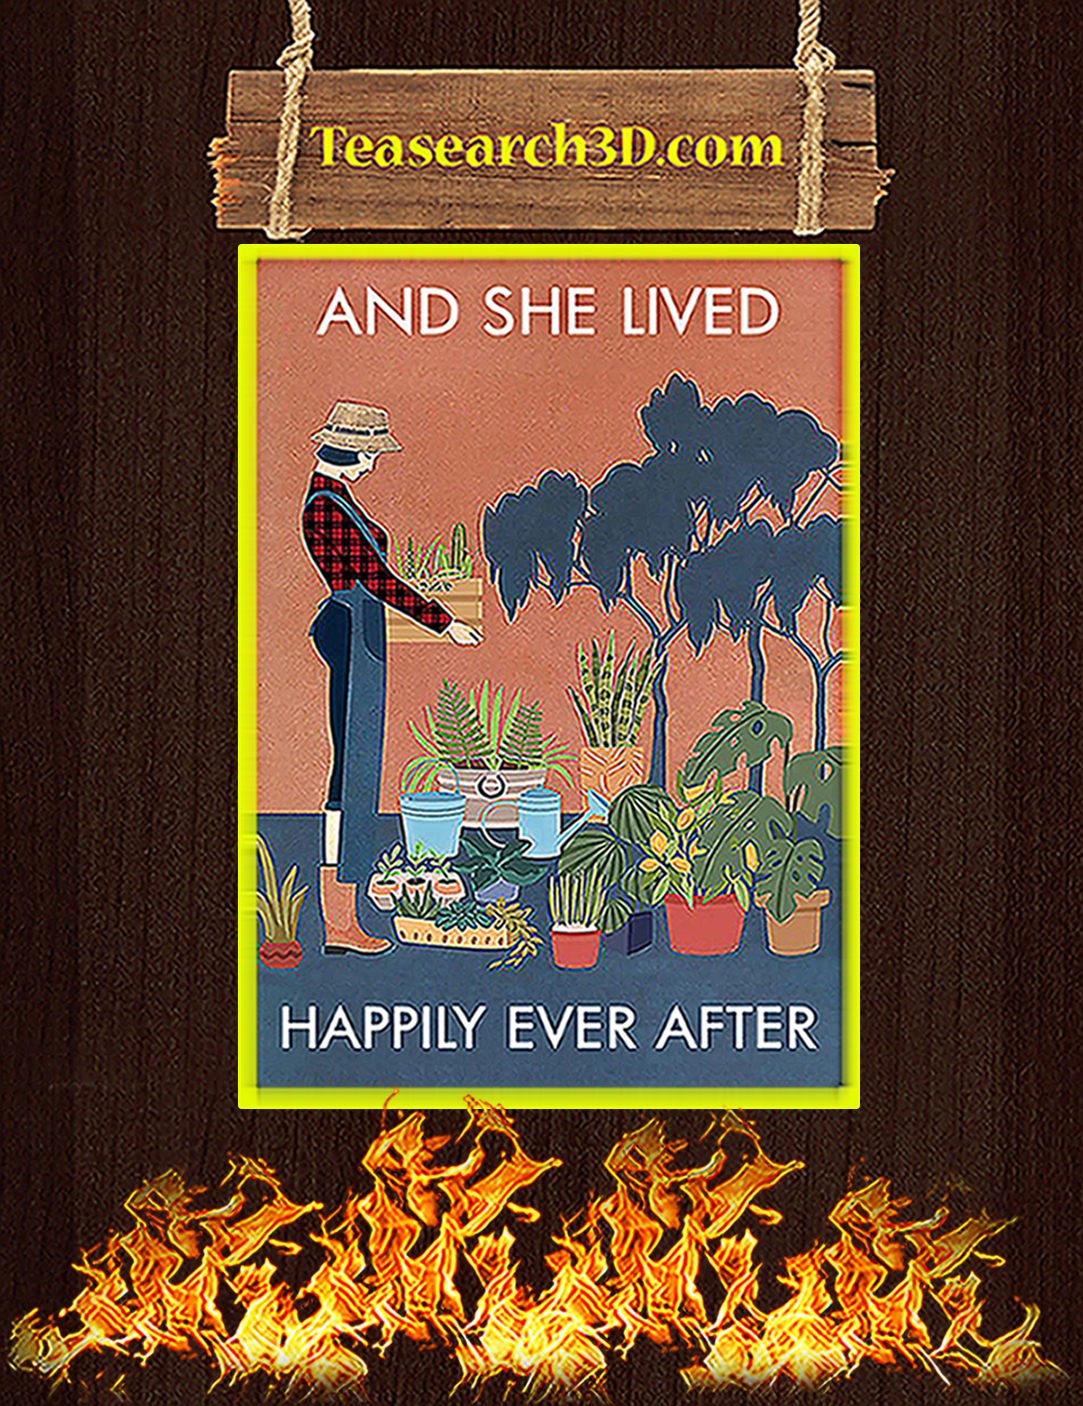 Gardening and she lived happily ever after poster A2